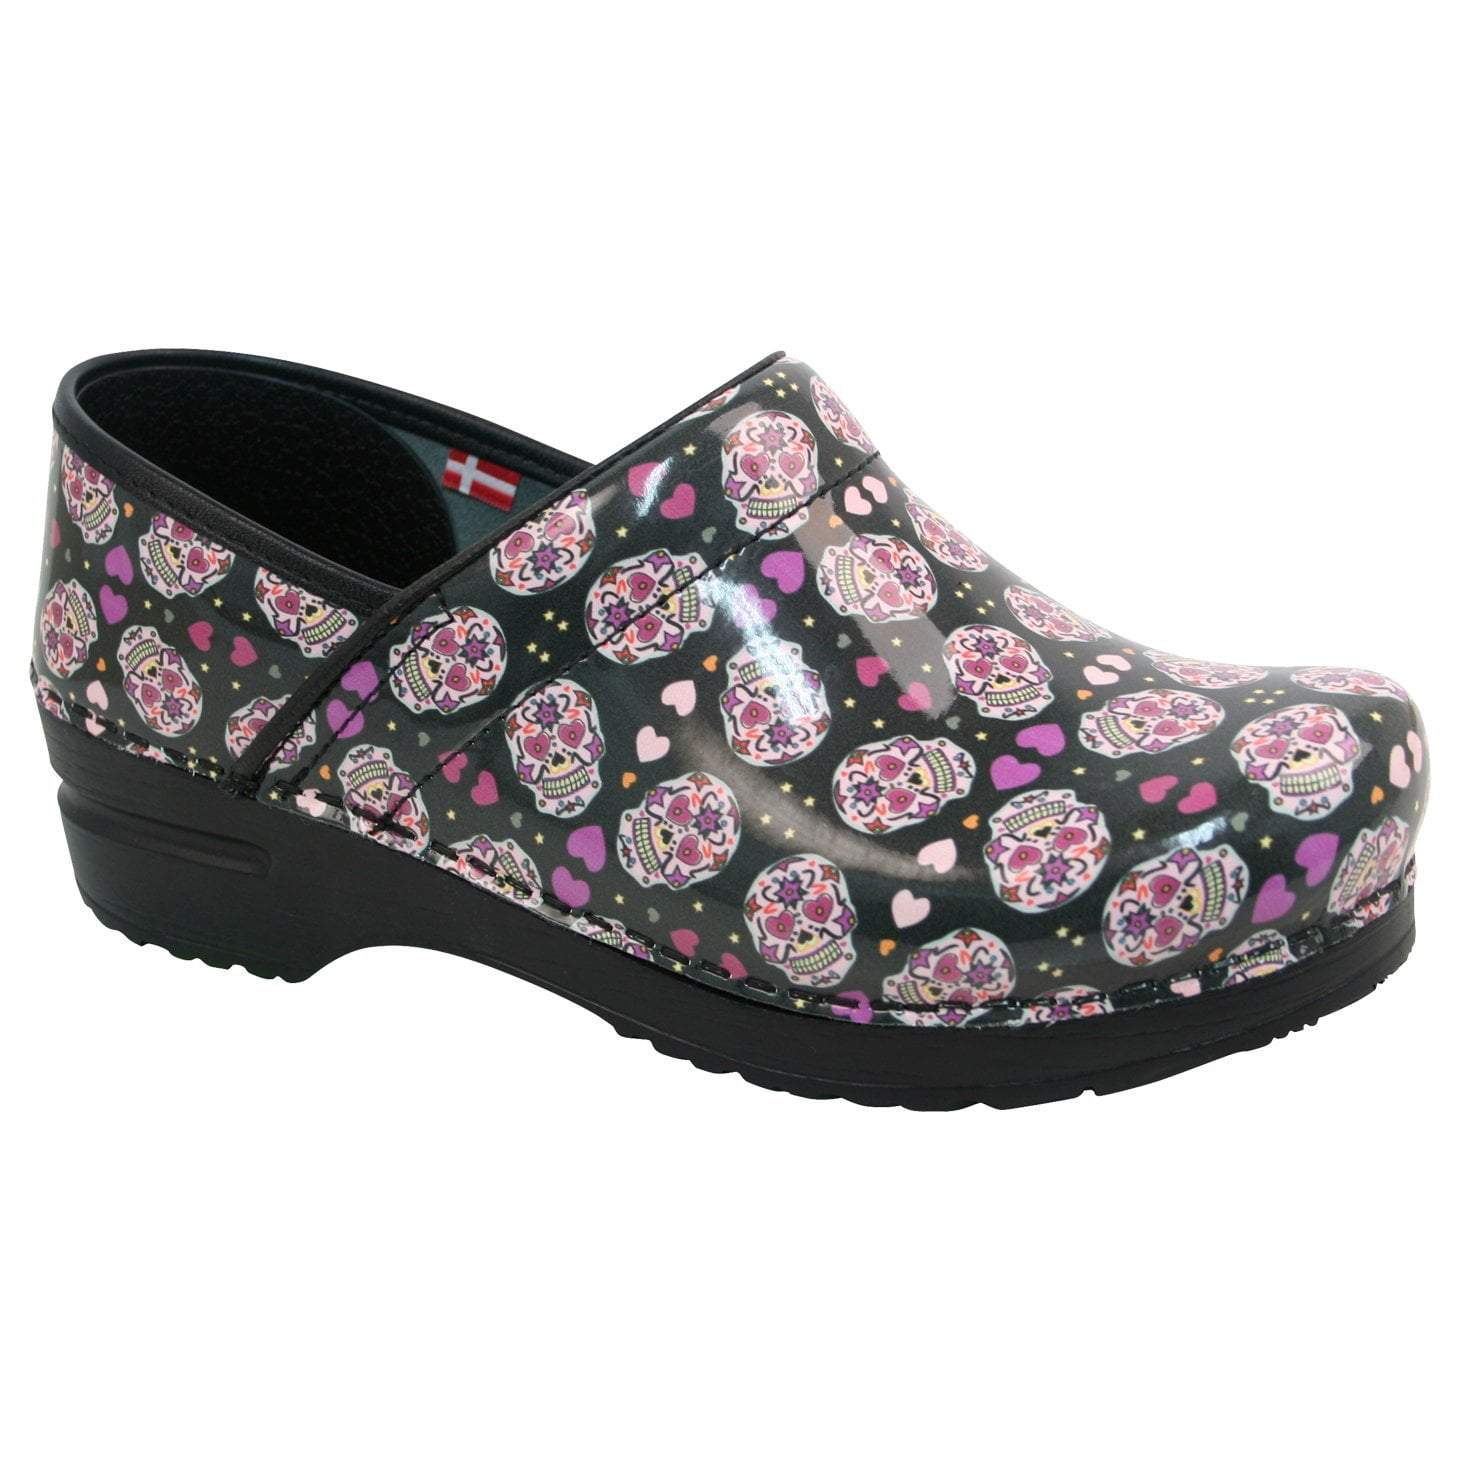 Sanita Lupe Women's Closed Back Clog